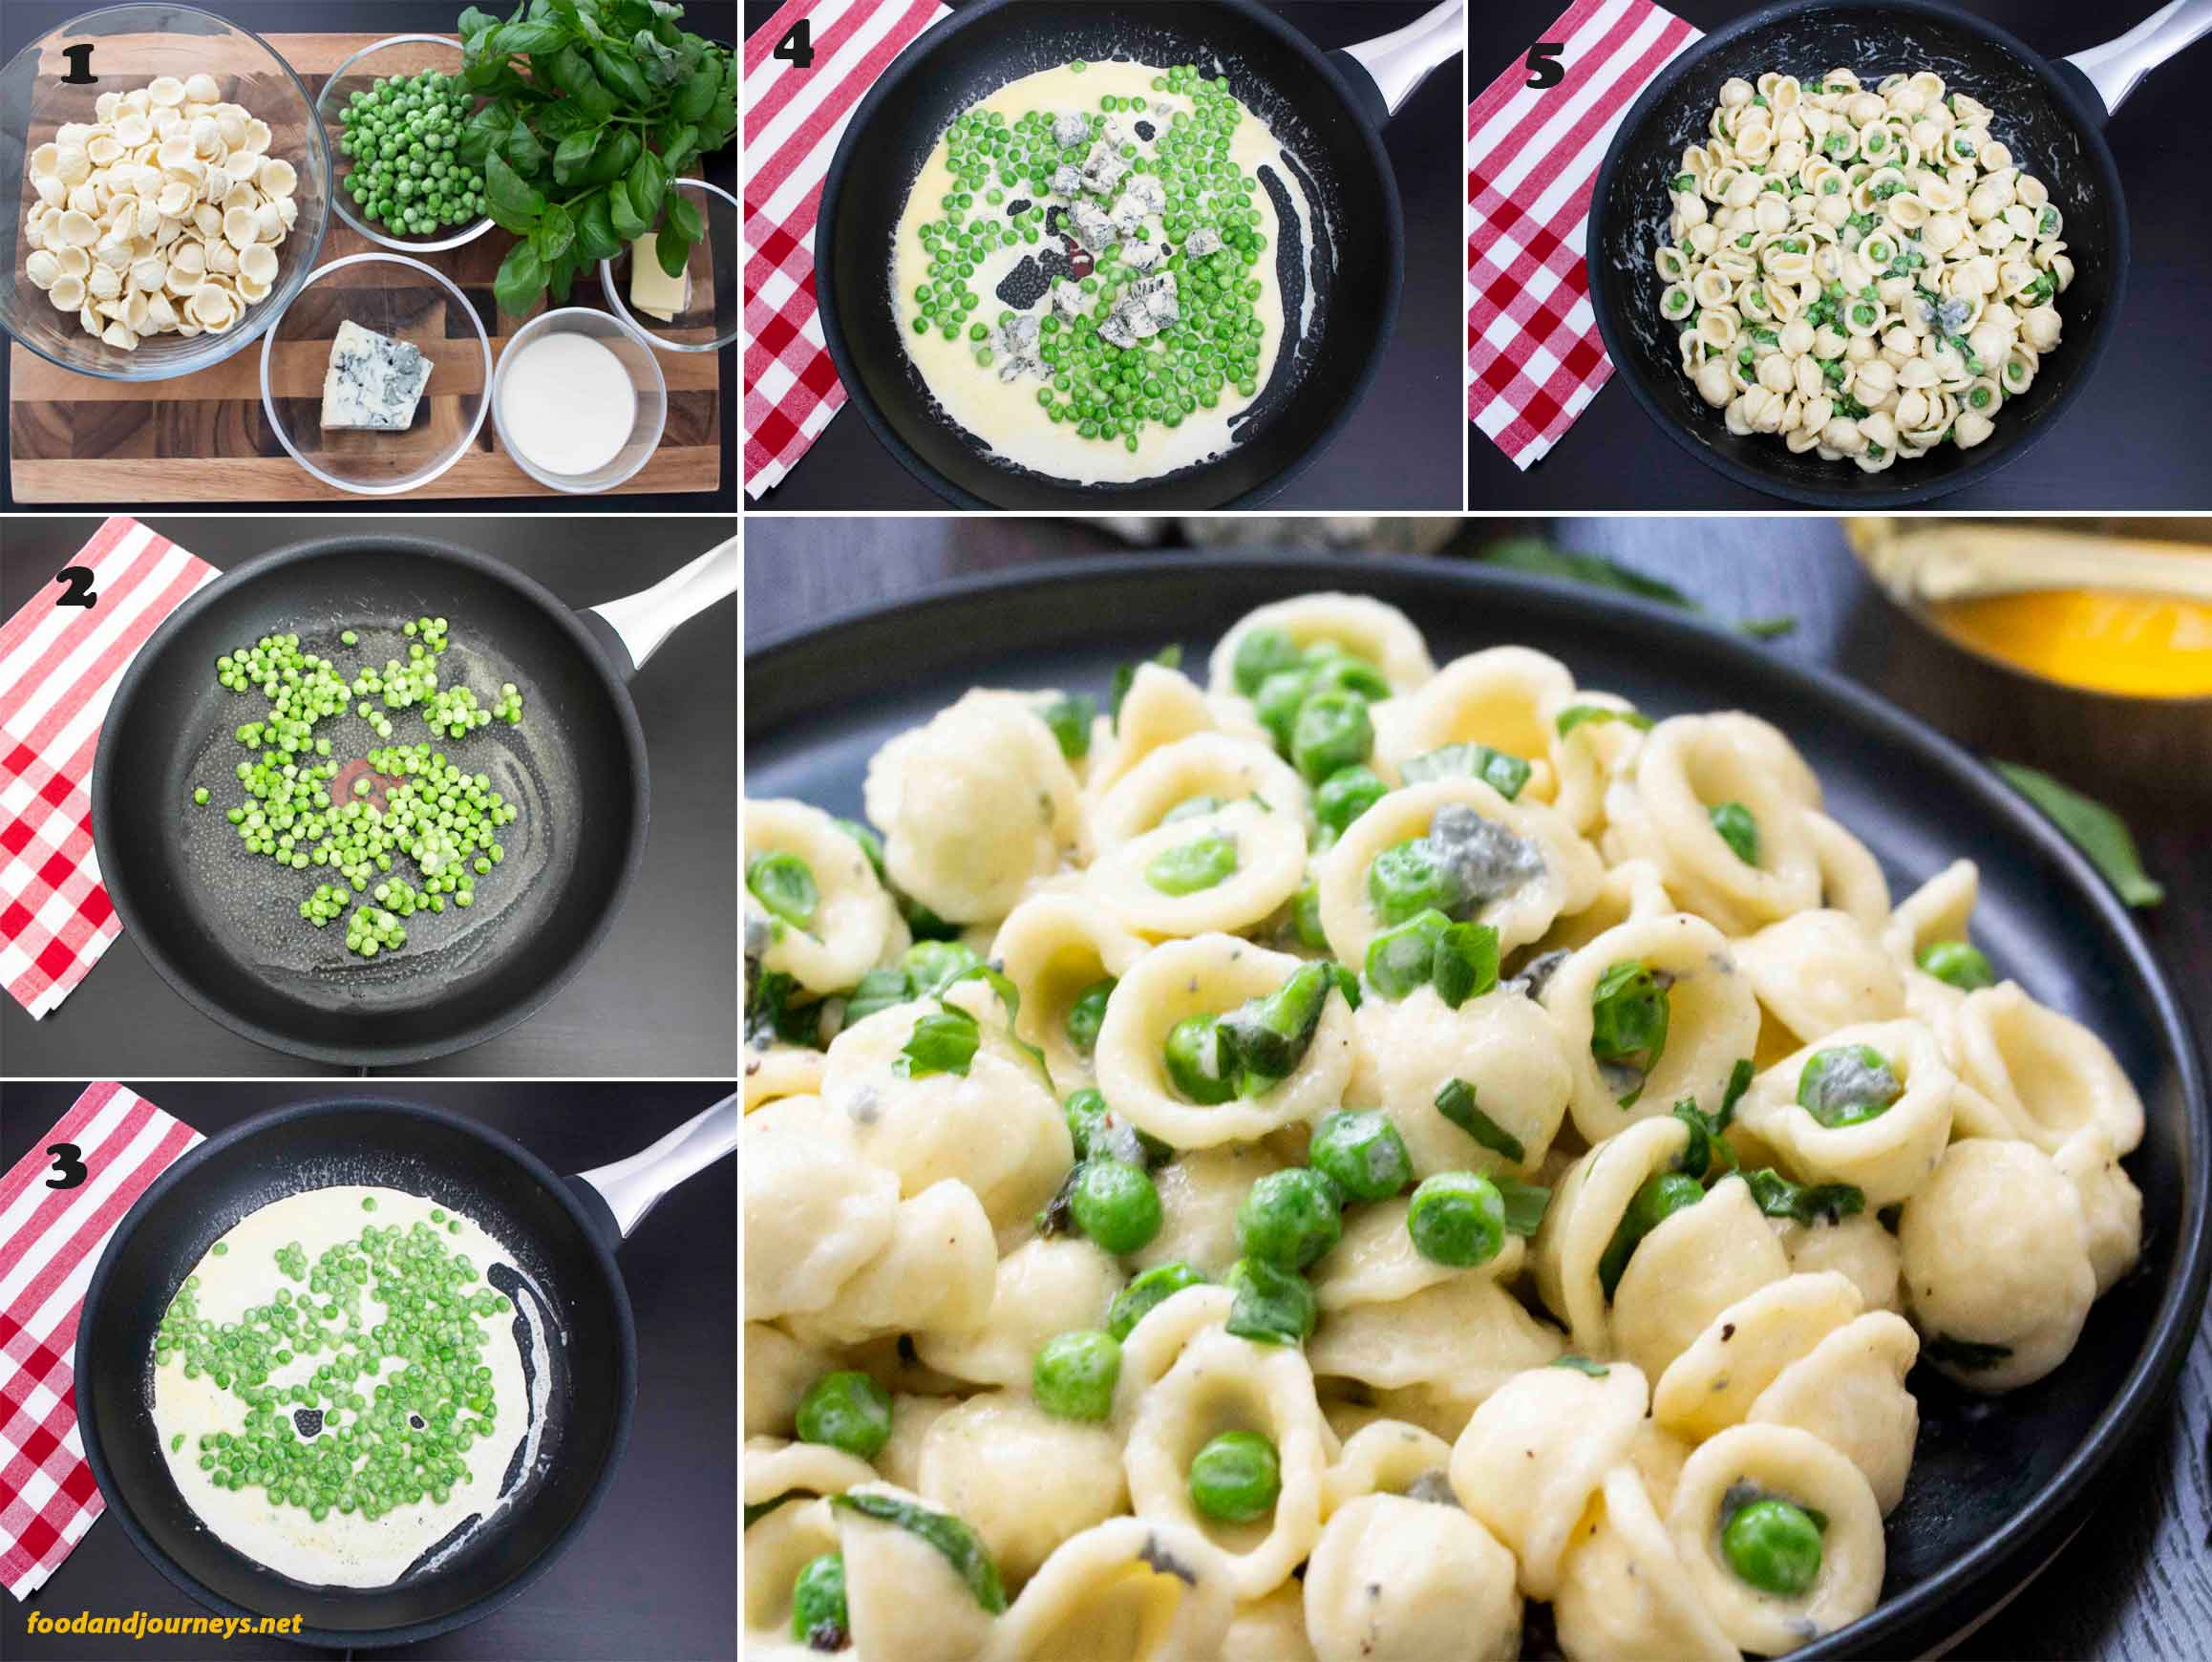 Collage of images showing step by step process on how to make Orecchiette with Peas & Gorgonzola